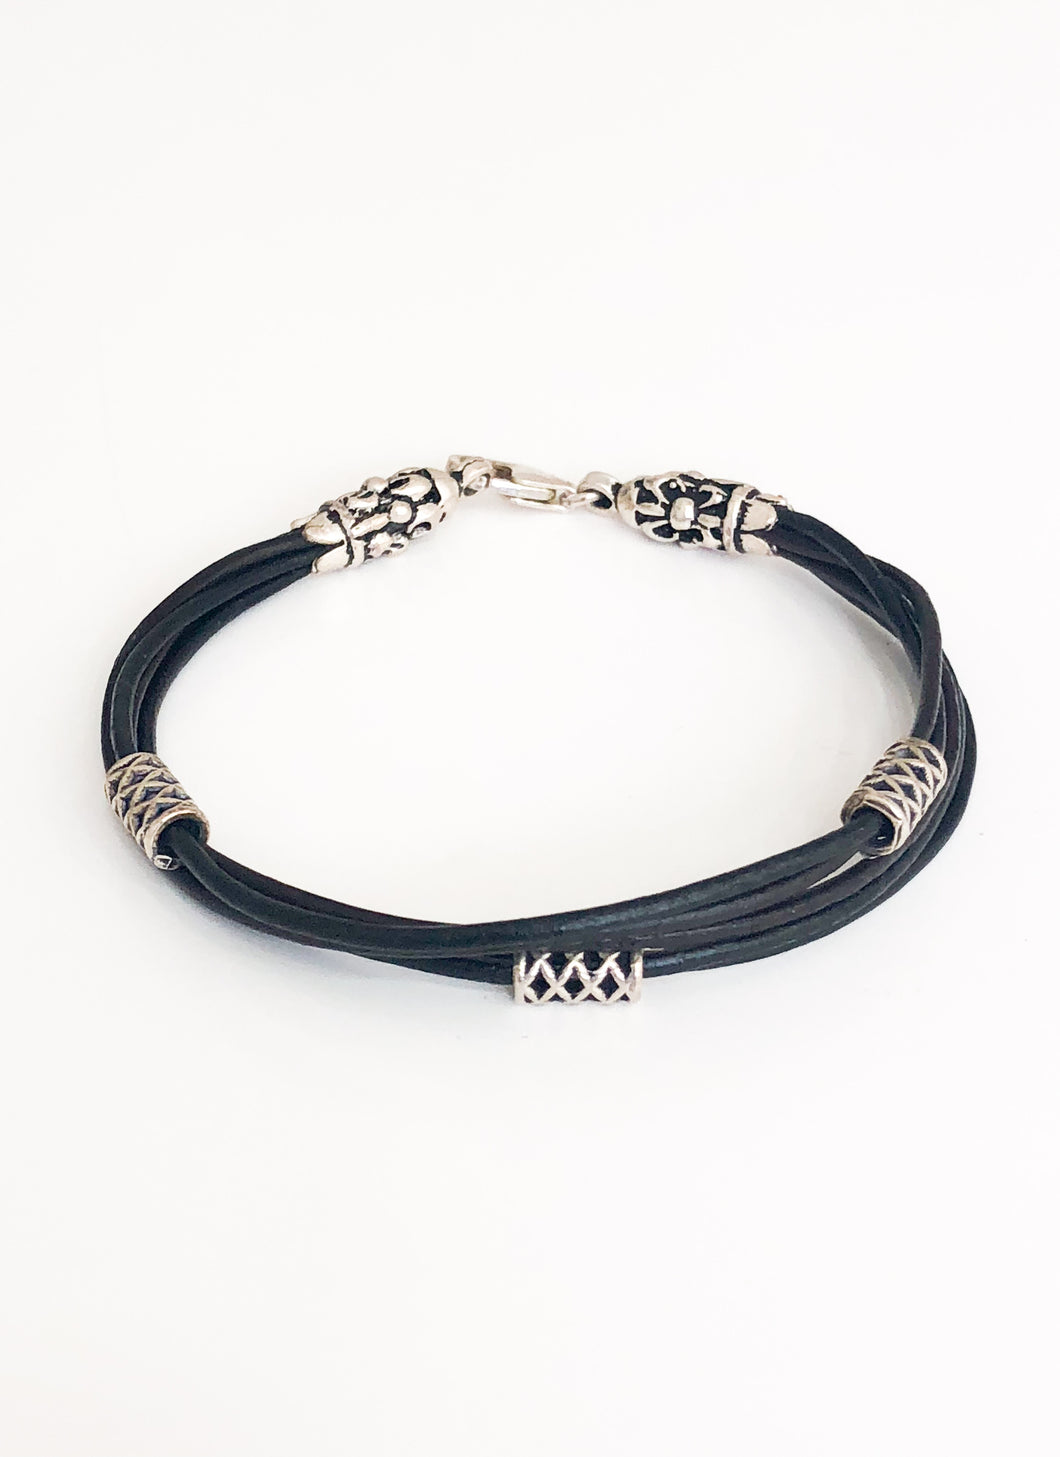 Leather Silver Bracelet - Sufi Design